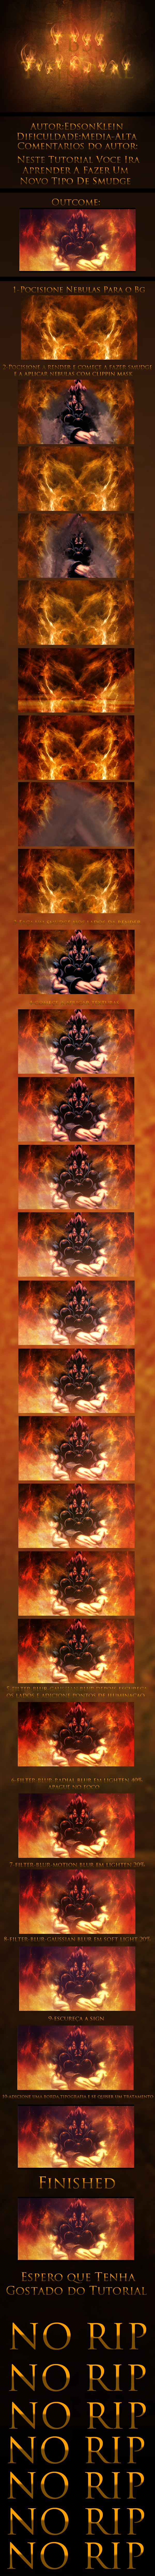 The burning smudge styles Tutorial Tbss_tutorial_by_edsonklein-d3c3fv0